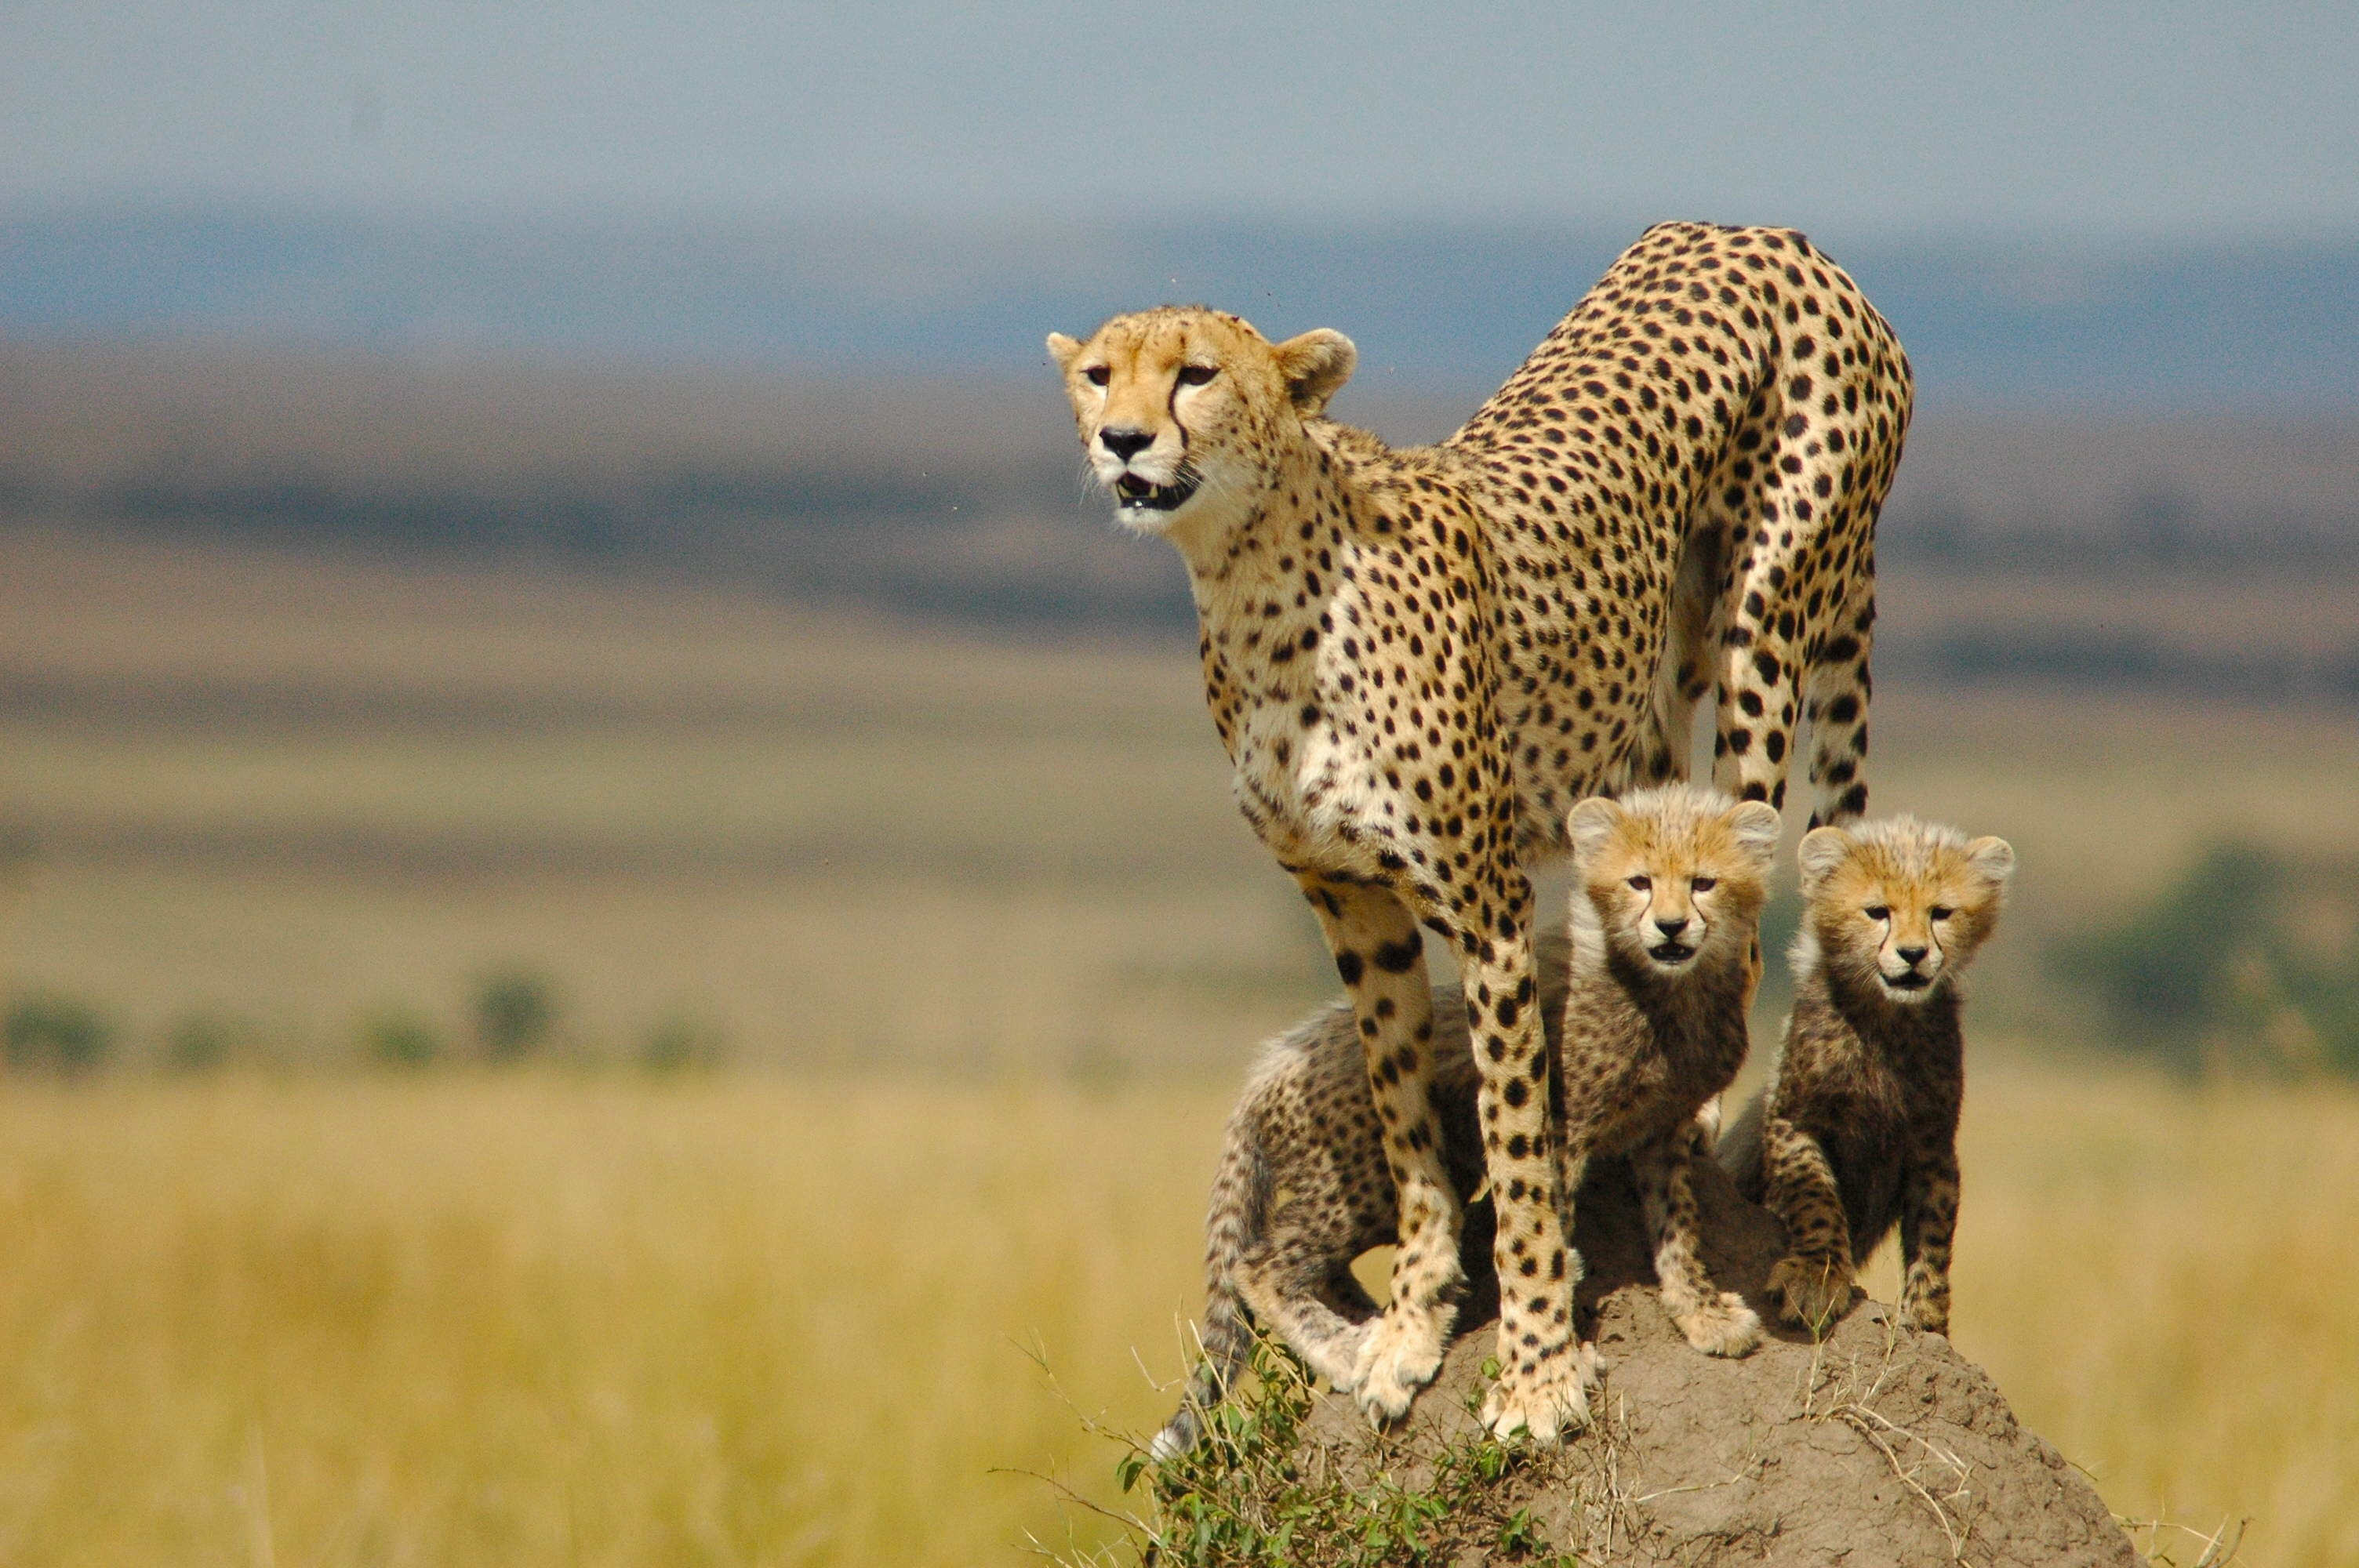 Cheetahs chase tourists at Dutch safari park after family gets out of car to snap pictures